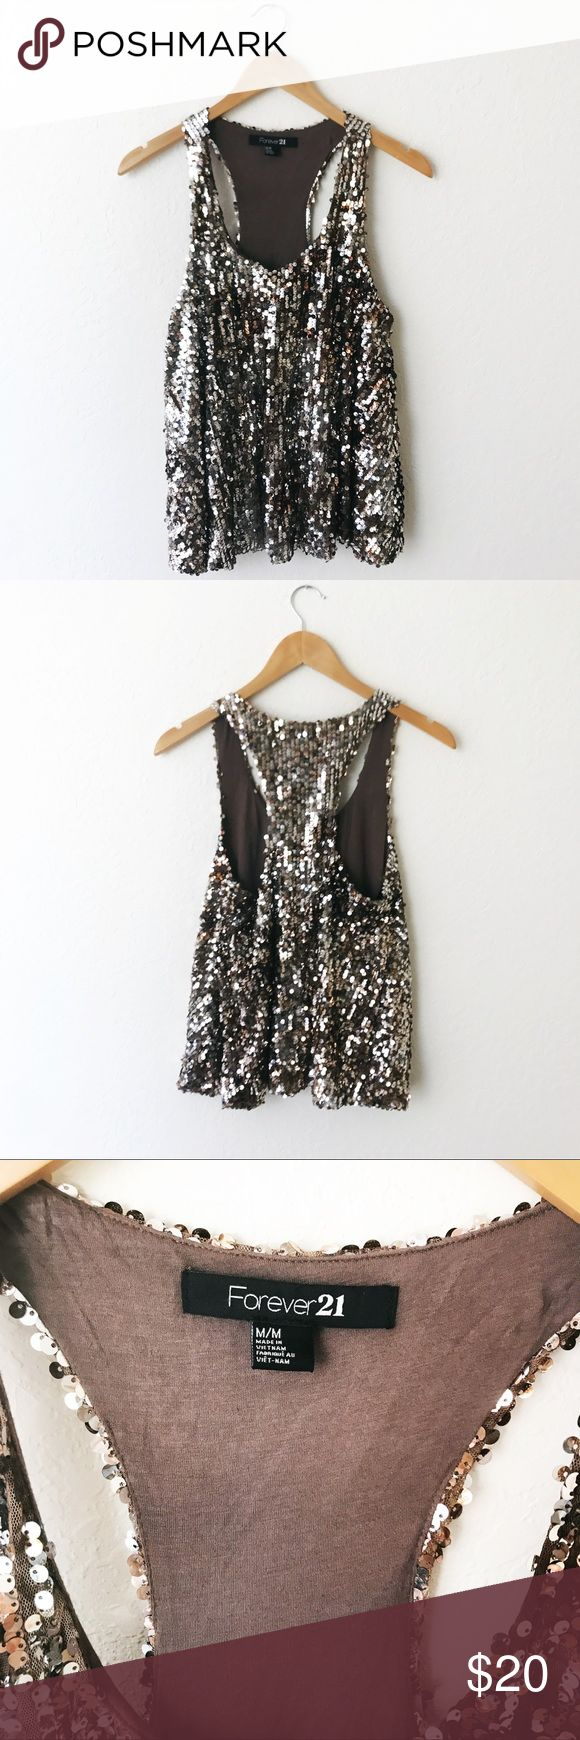 """Sparkly Bedazzled Sequin Racerback Tank Top Excellent preowned condition. Worn once for a New Year's party. Fun and festive Tank totally embellished throughout with a sort of silver/gold sequin design on a brown background. Bottom part is flowy and is not fitted. Such a fun and festive top! Great for the holidays. Approximate measurements when laid flat: 18"""" bust, 24"""" length. Has stretch, inside is lined with soft fabric so it's not itchy and is comfy to wear. Forever 21 Tops Tank Tops"""